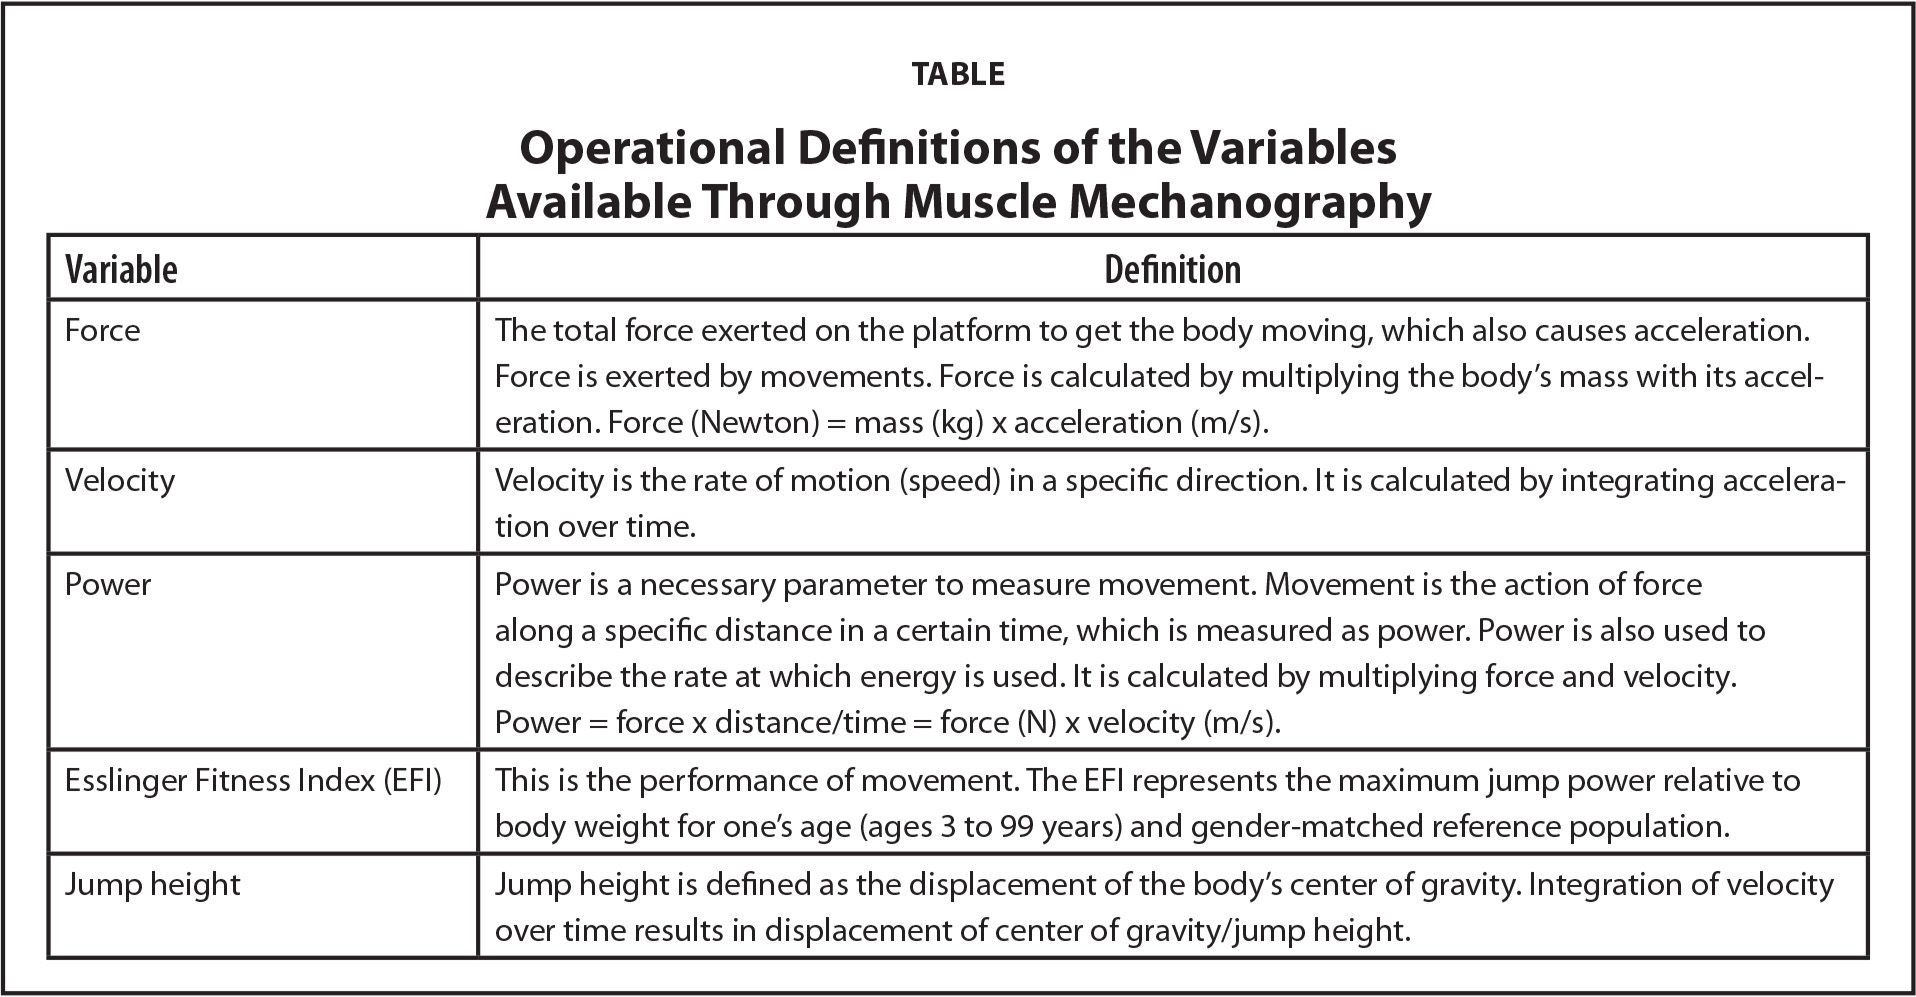 Operational Definitions of the Variables Available Through Muscle Mechanography